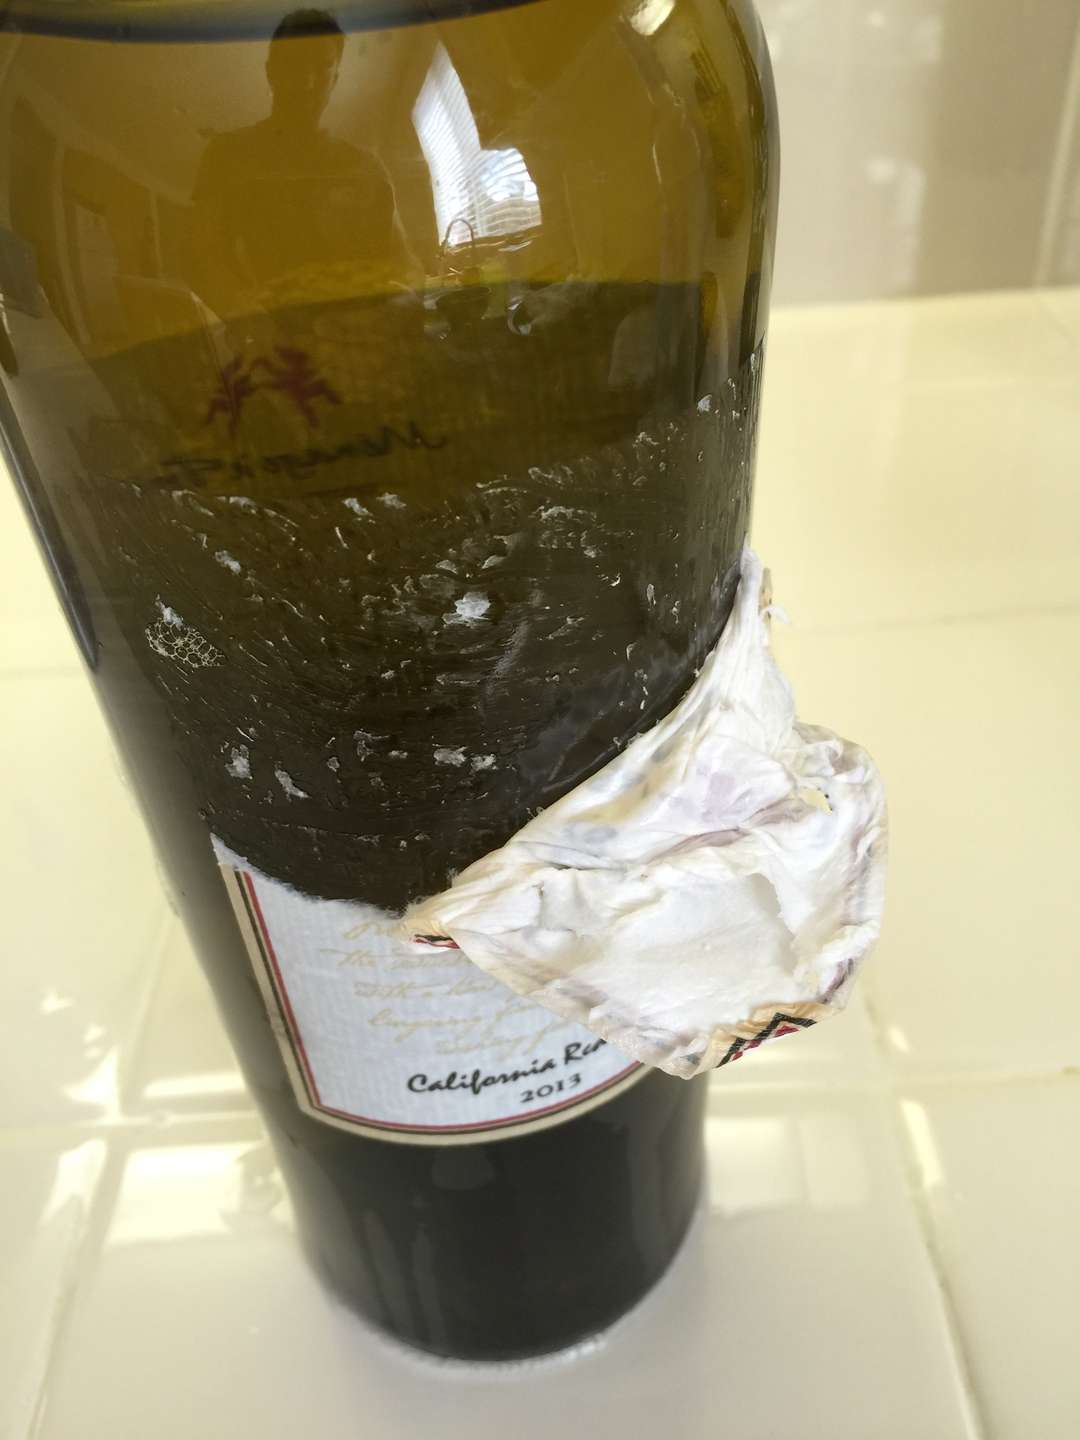 Remove the label from the wine bottle